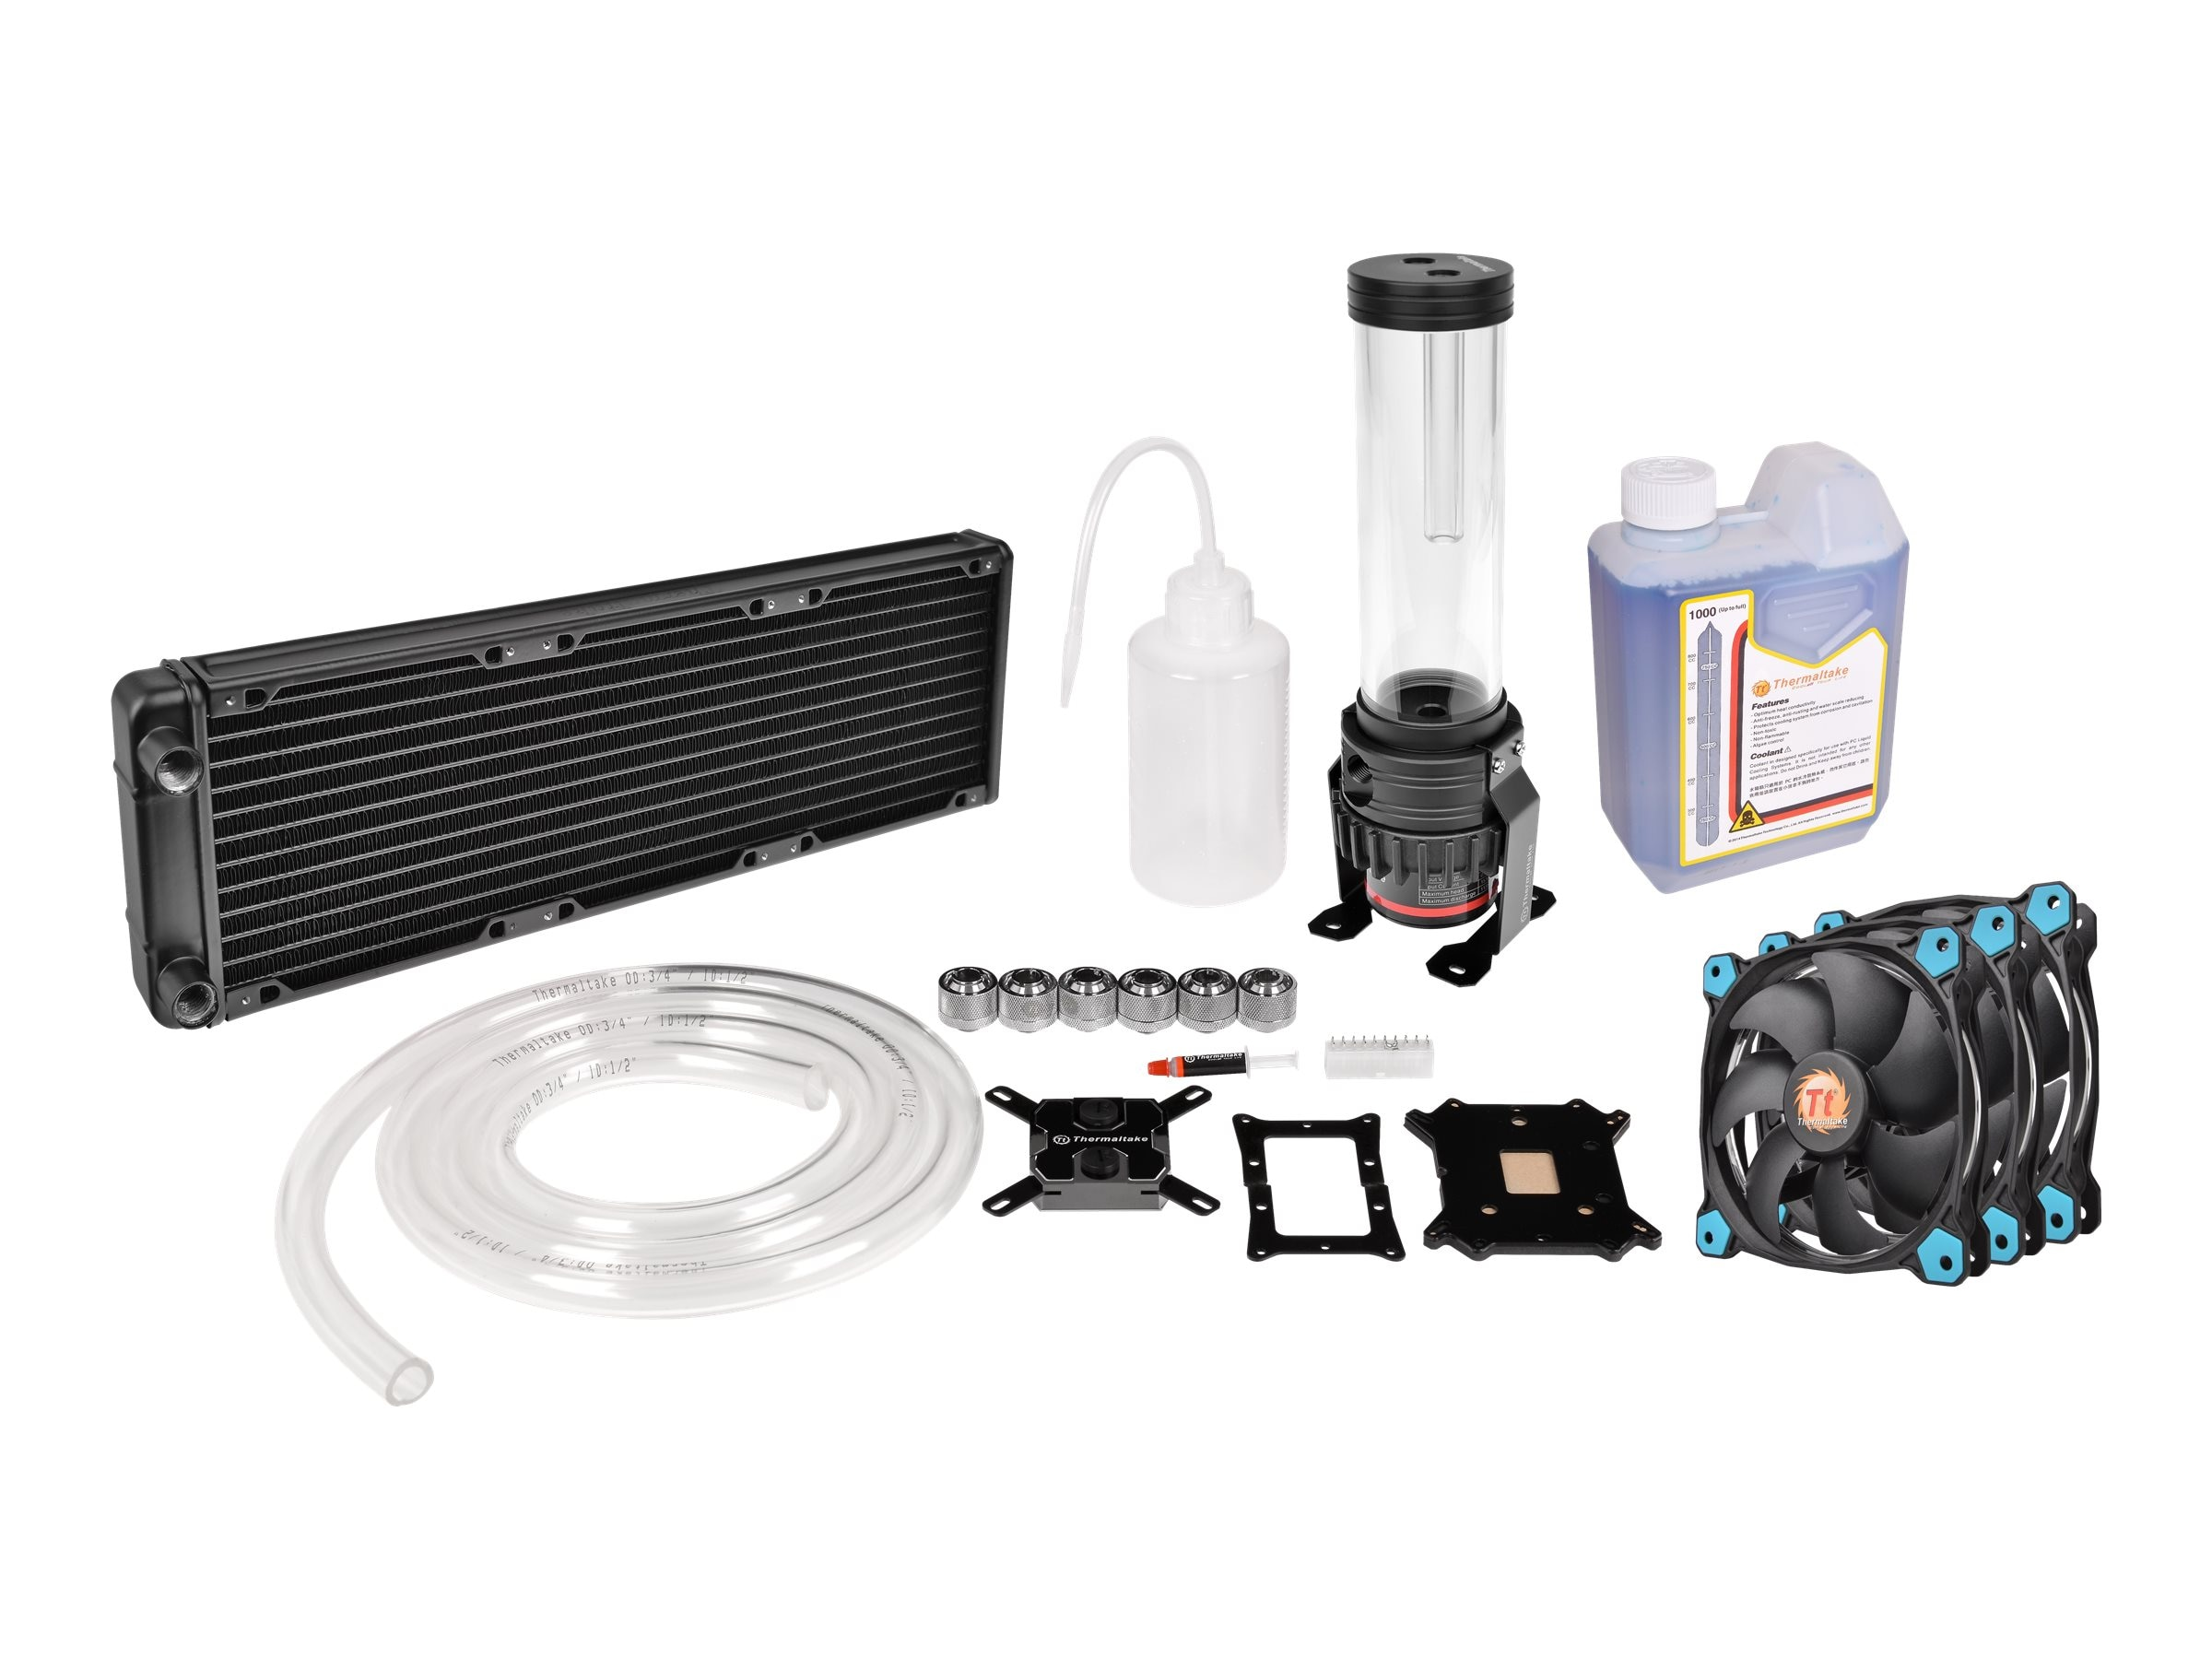 Thermaltake Pacific R360 Water Cooling Kit with Block, Pump, Reservoir, Radiator, and (3x)Riing LED Fans, CL-W115-CA12BU-A, 31465011, Cooling Systems/Fans